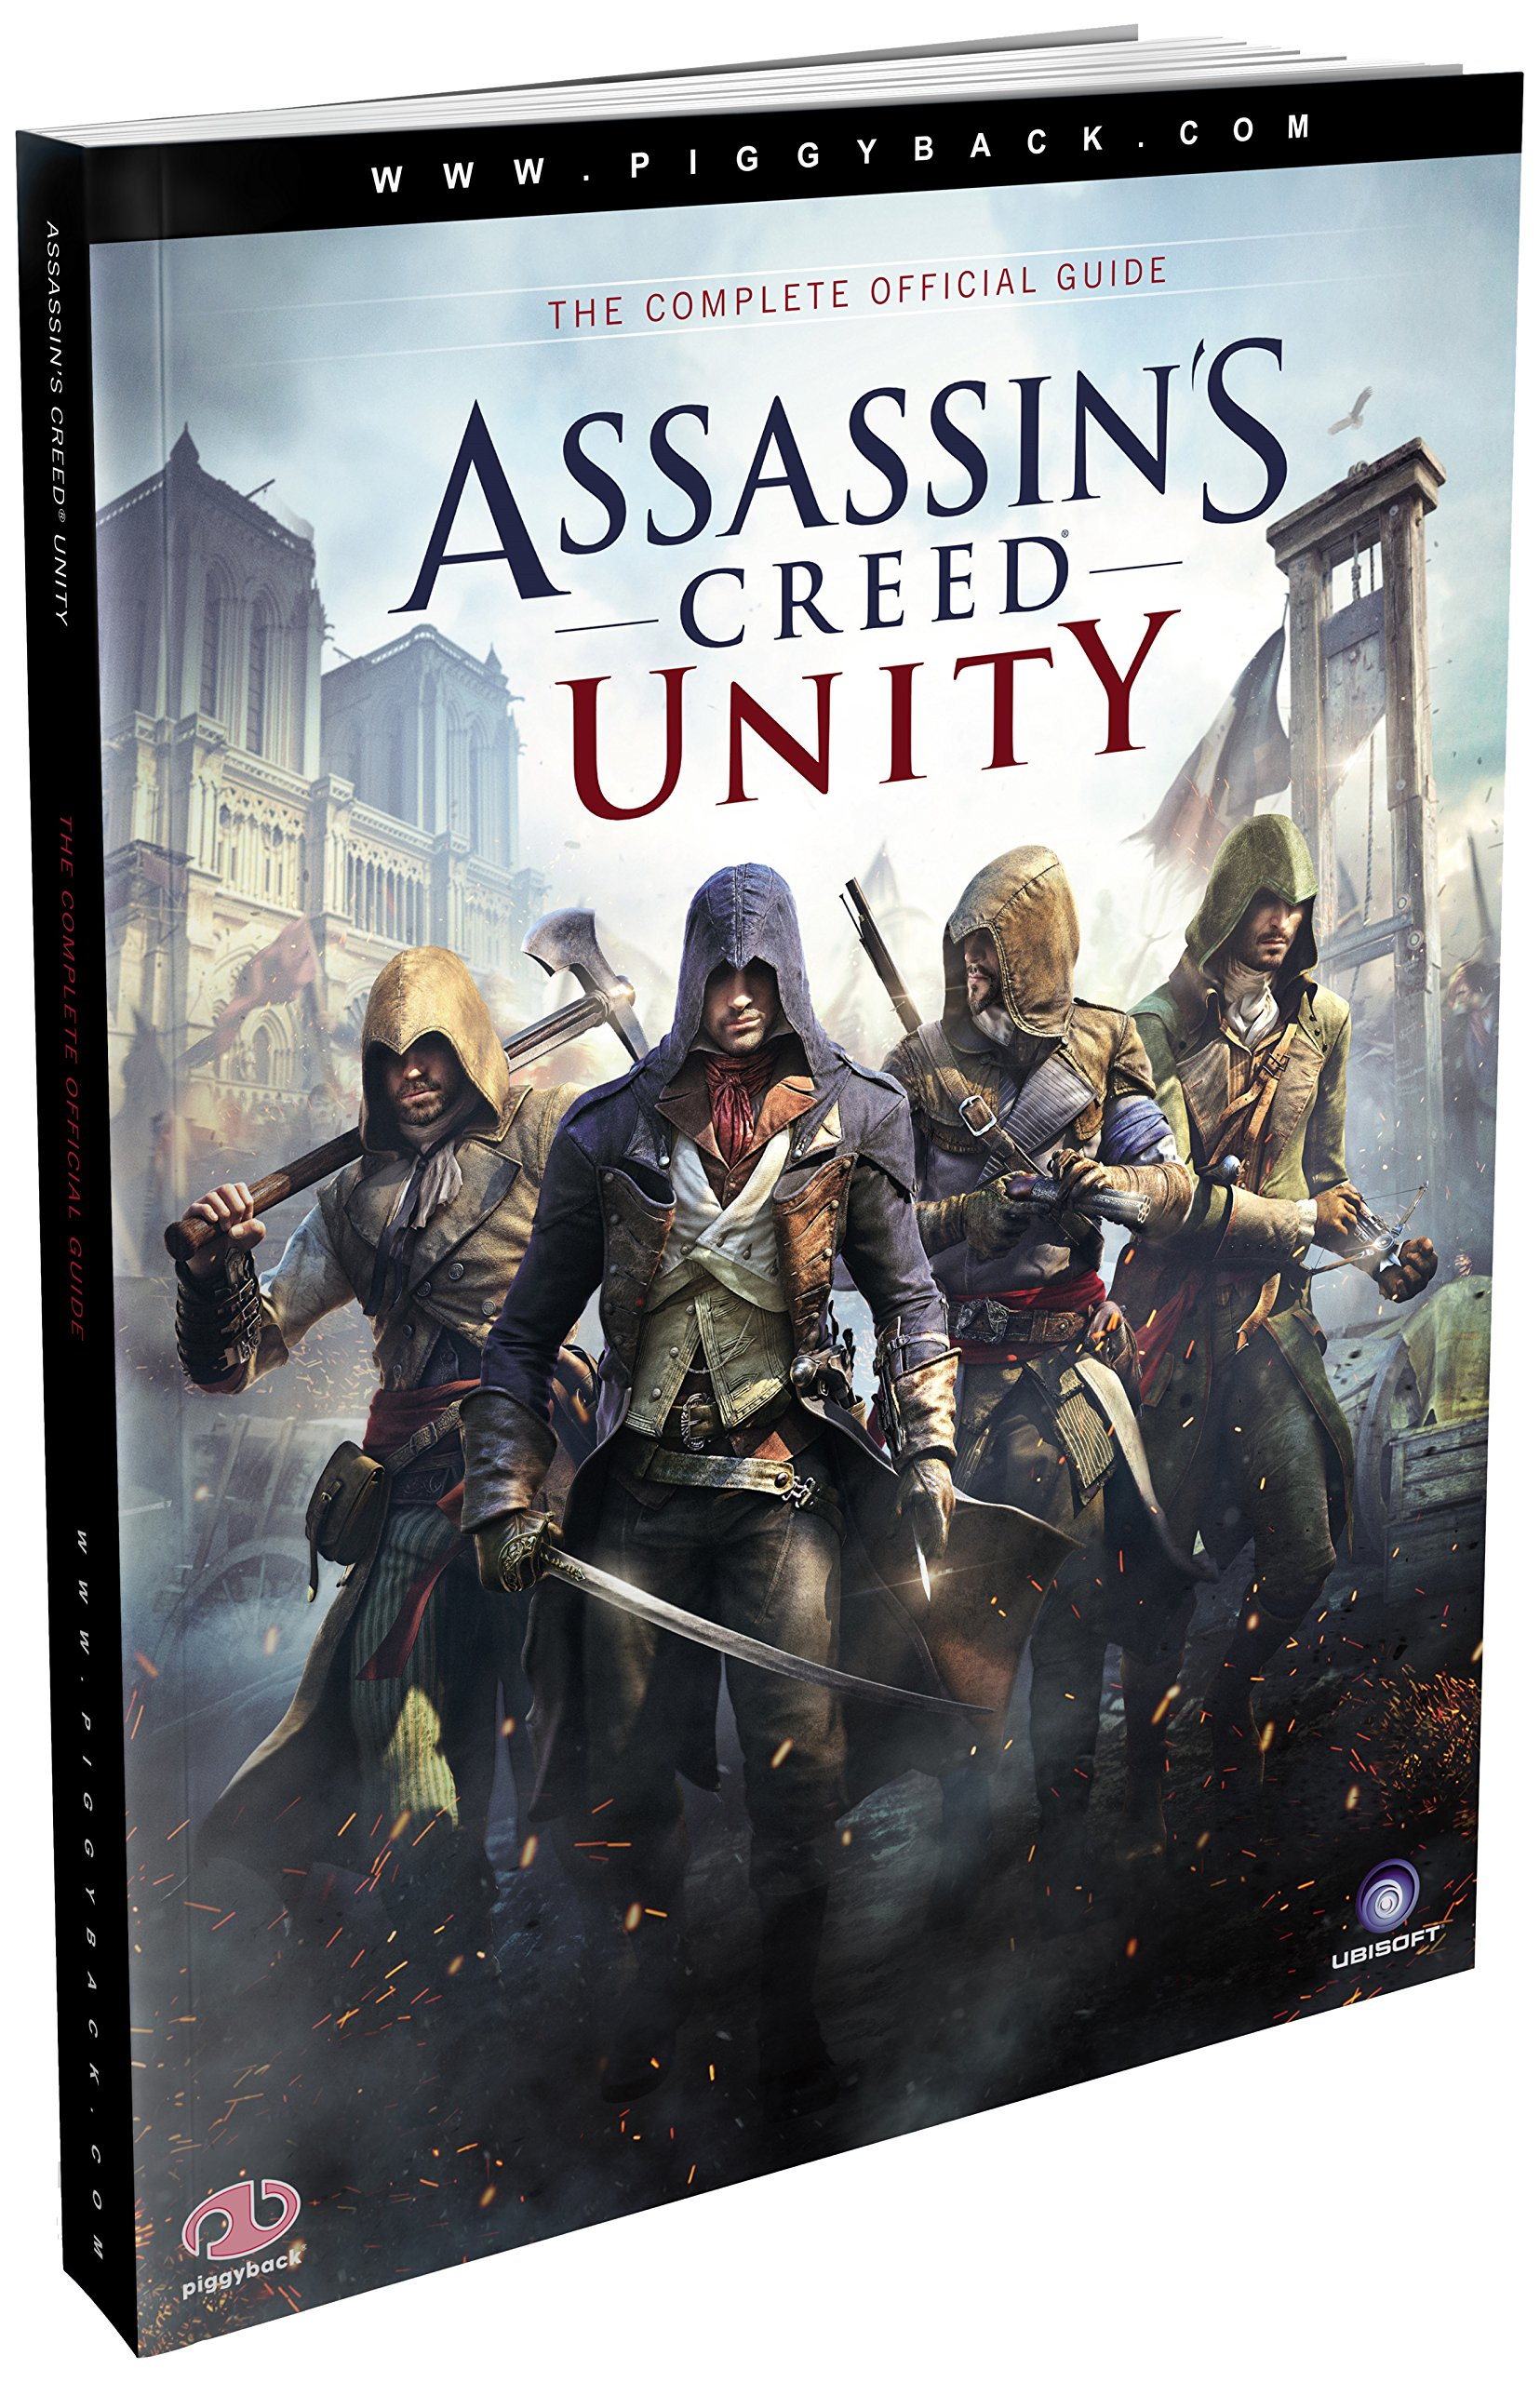 Download Assassin's Creed Unity - The Complete Official Guide 